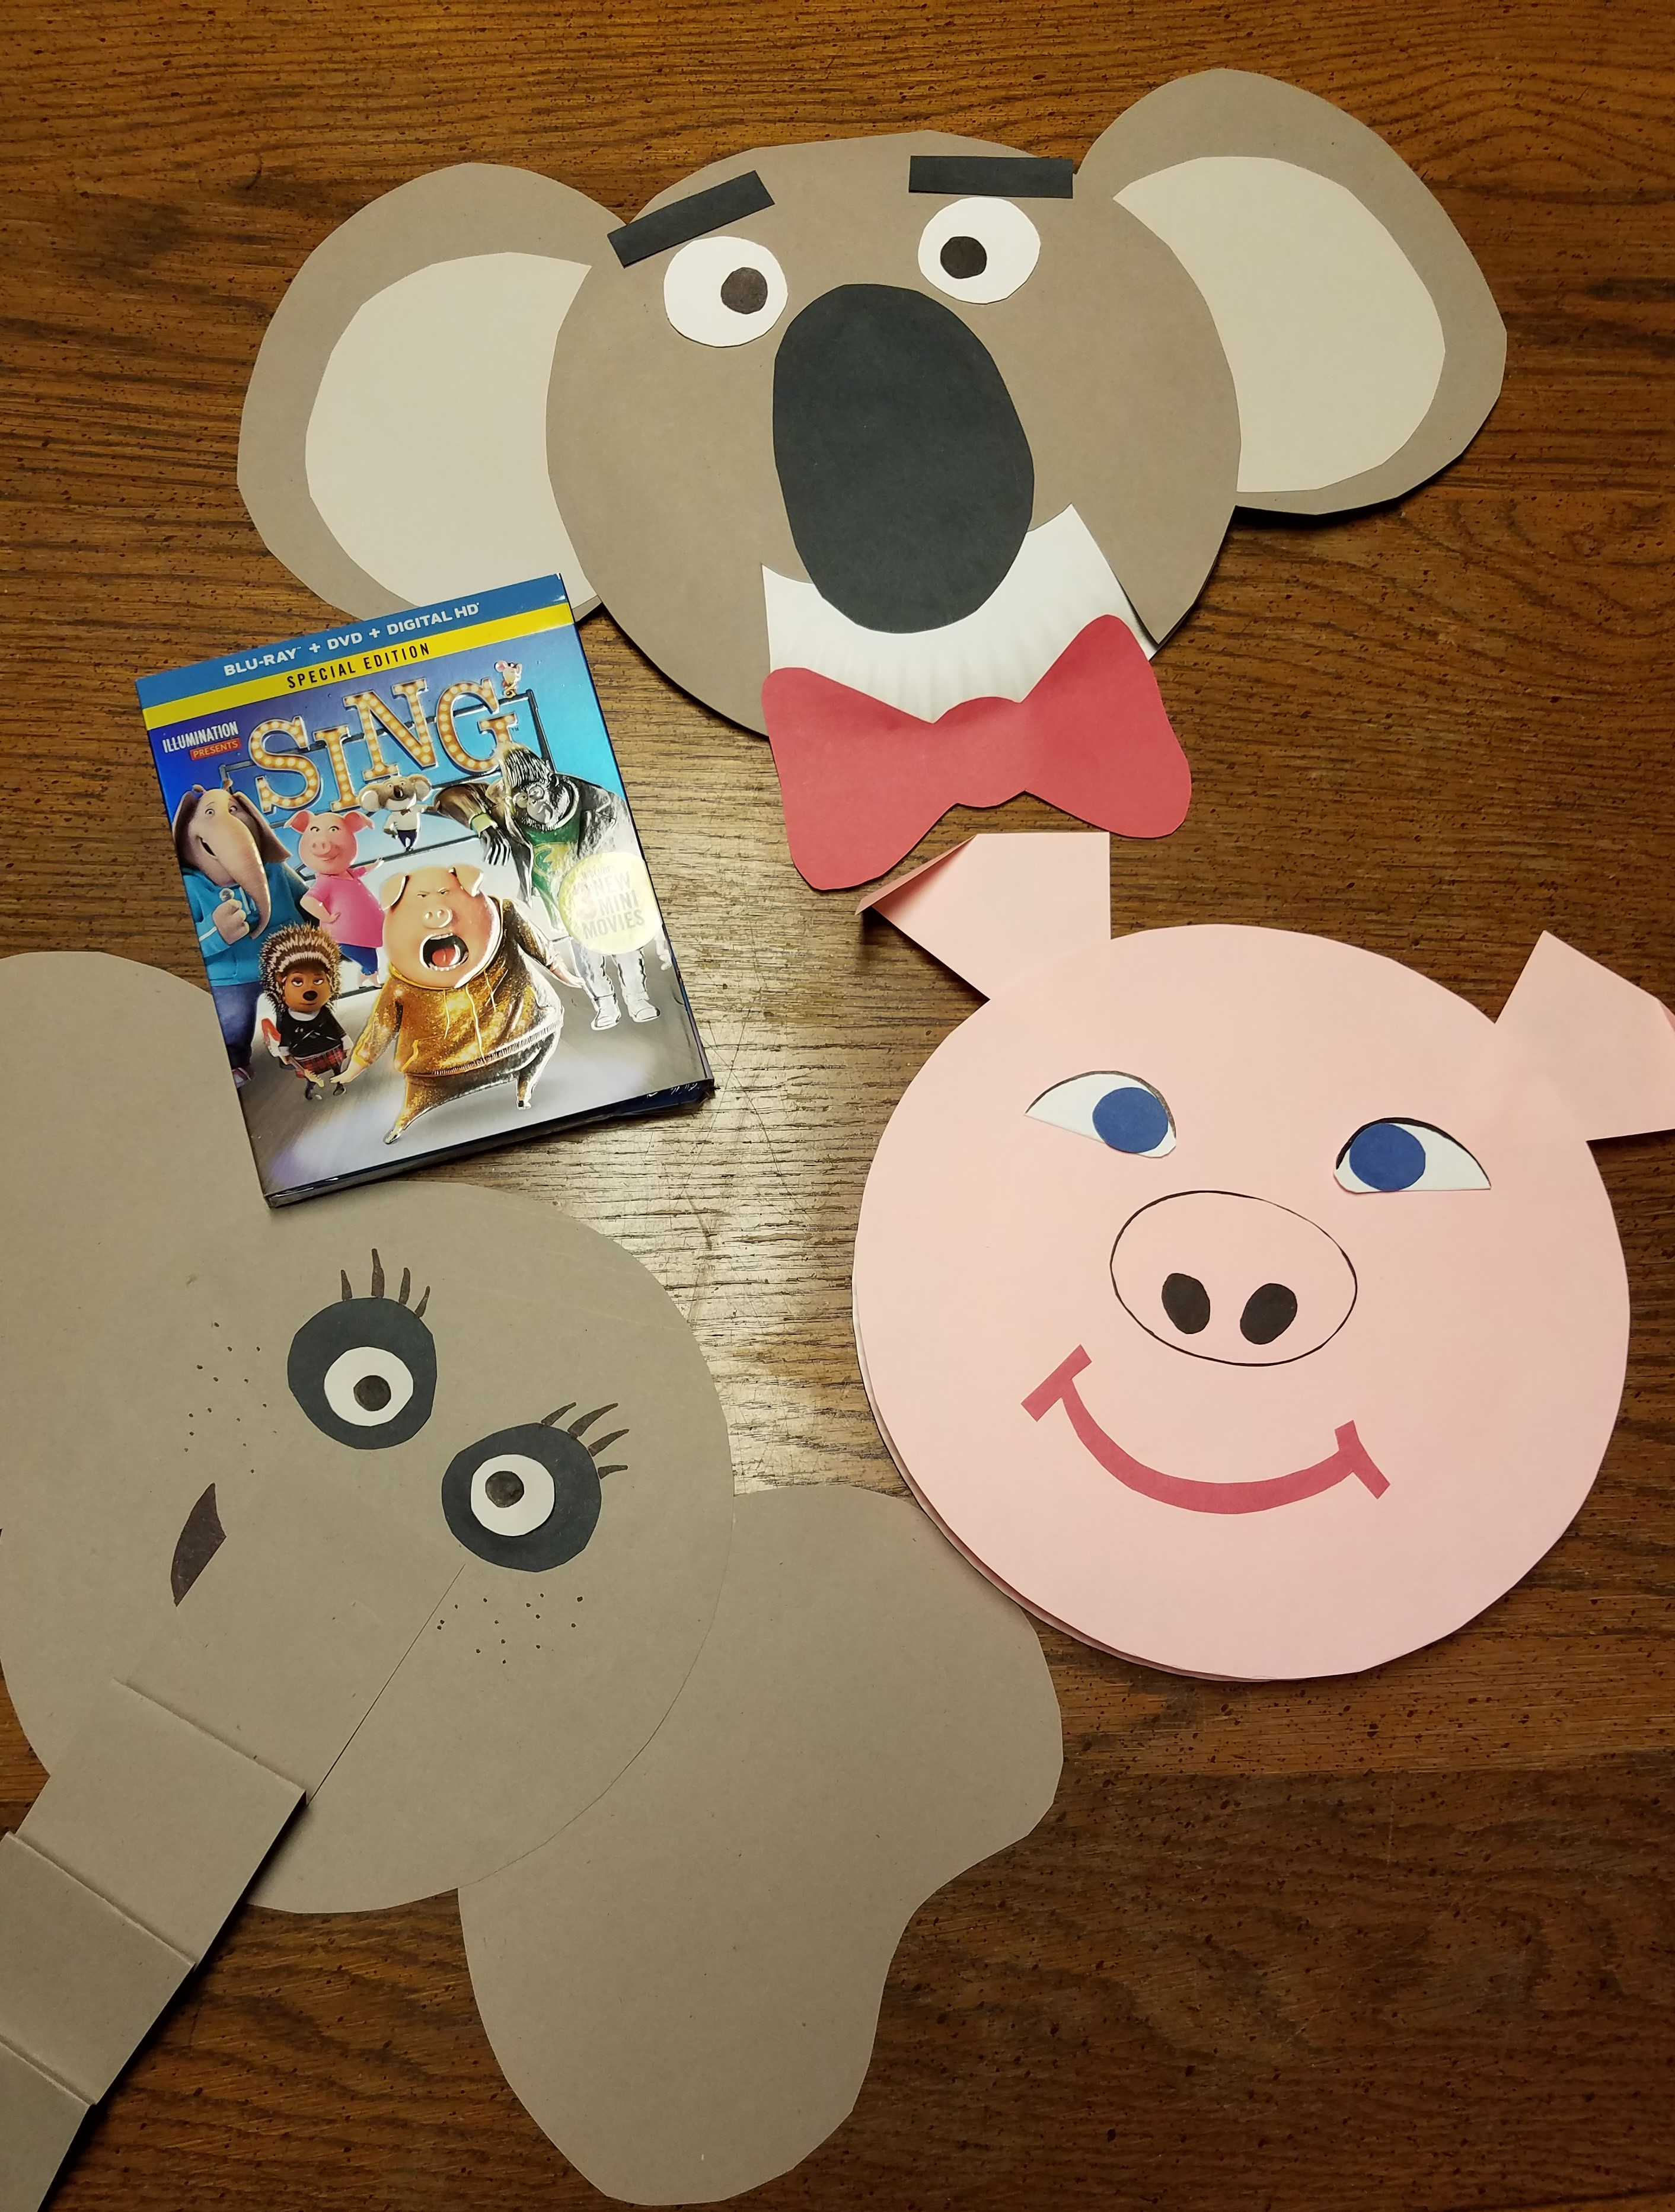 As a substitute teacher I\u0027ve had to master the ability to be creative on-the-spot. When you have a room full of restless children and time on your hands ... & Design Your Own Paper Plate Masks for SING Family Movie Night Rural Mom